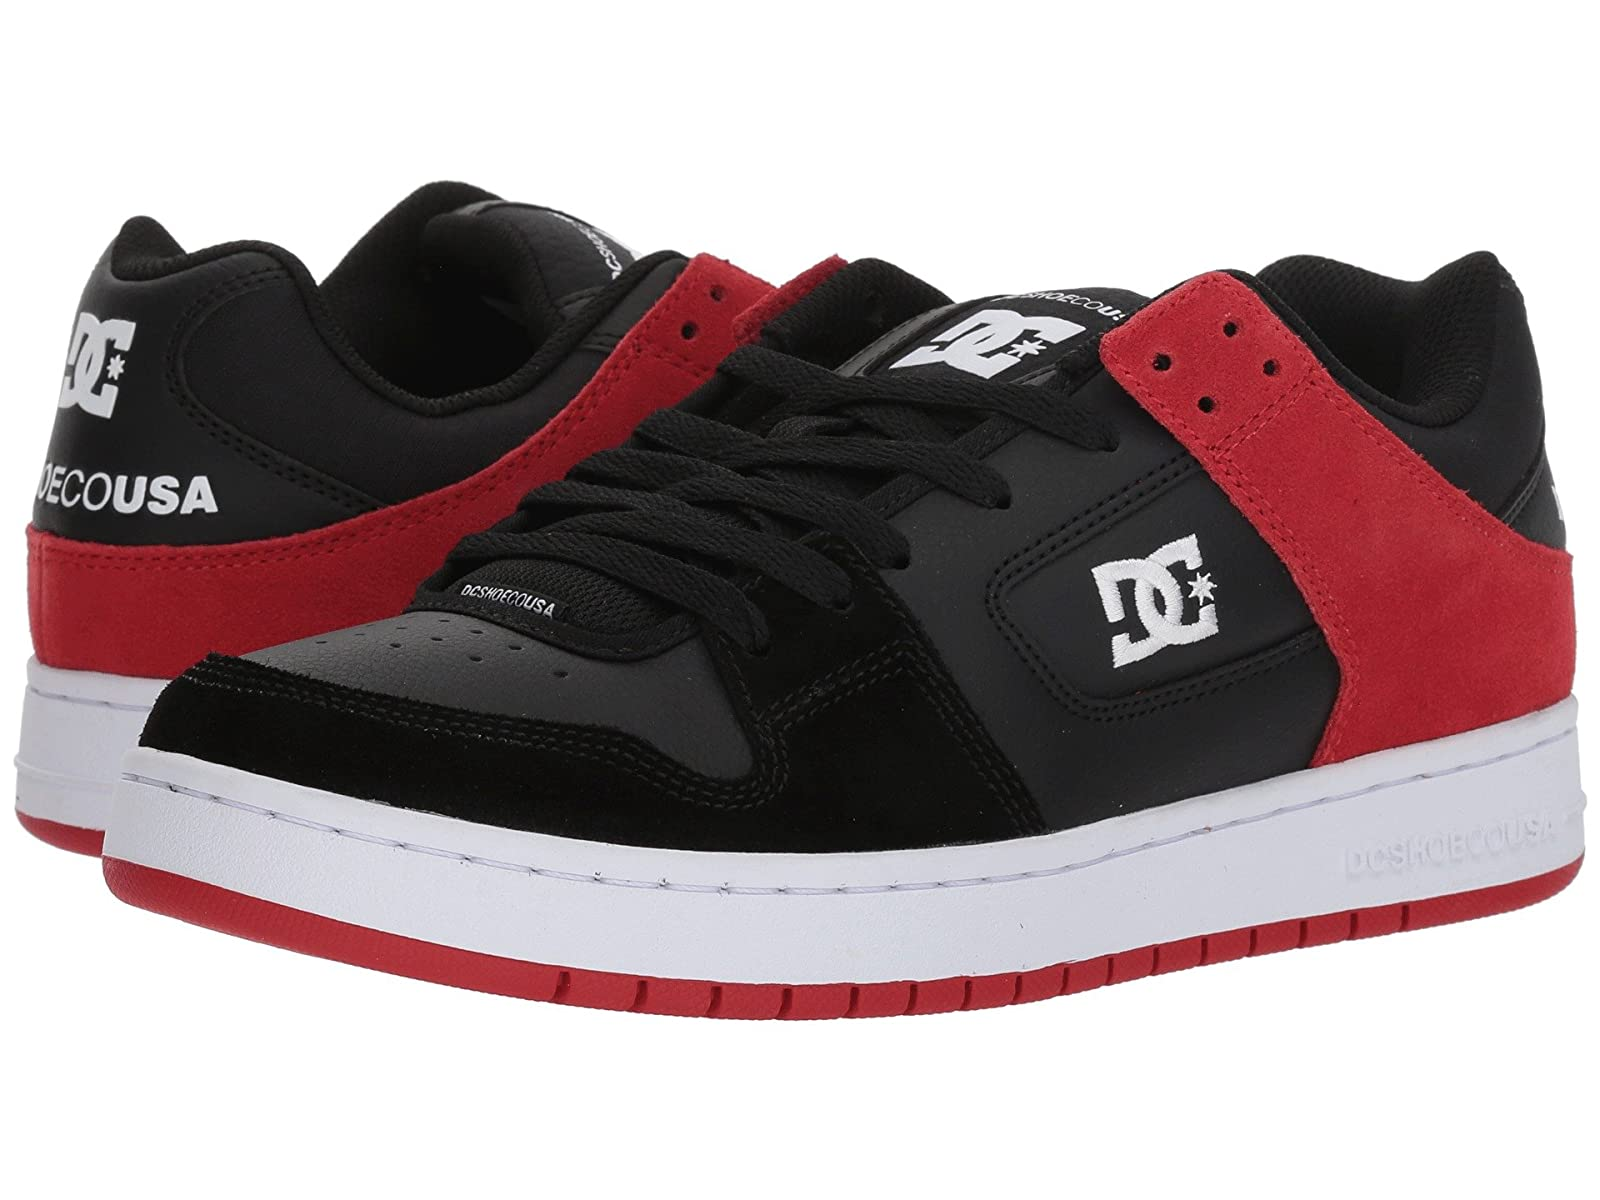 DC MantecaAtmospheric grades have affordable shoes